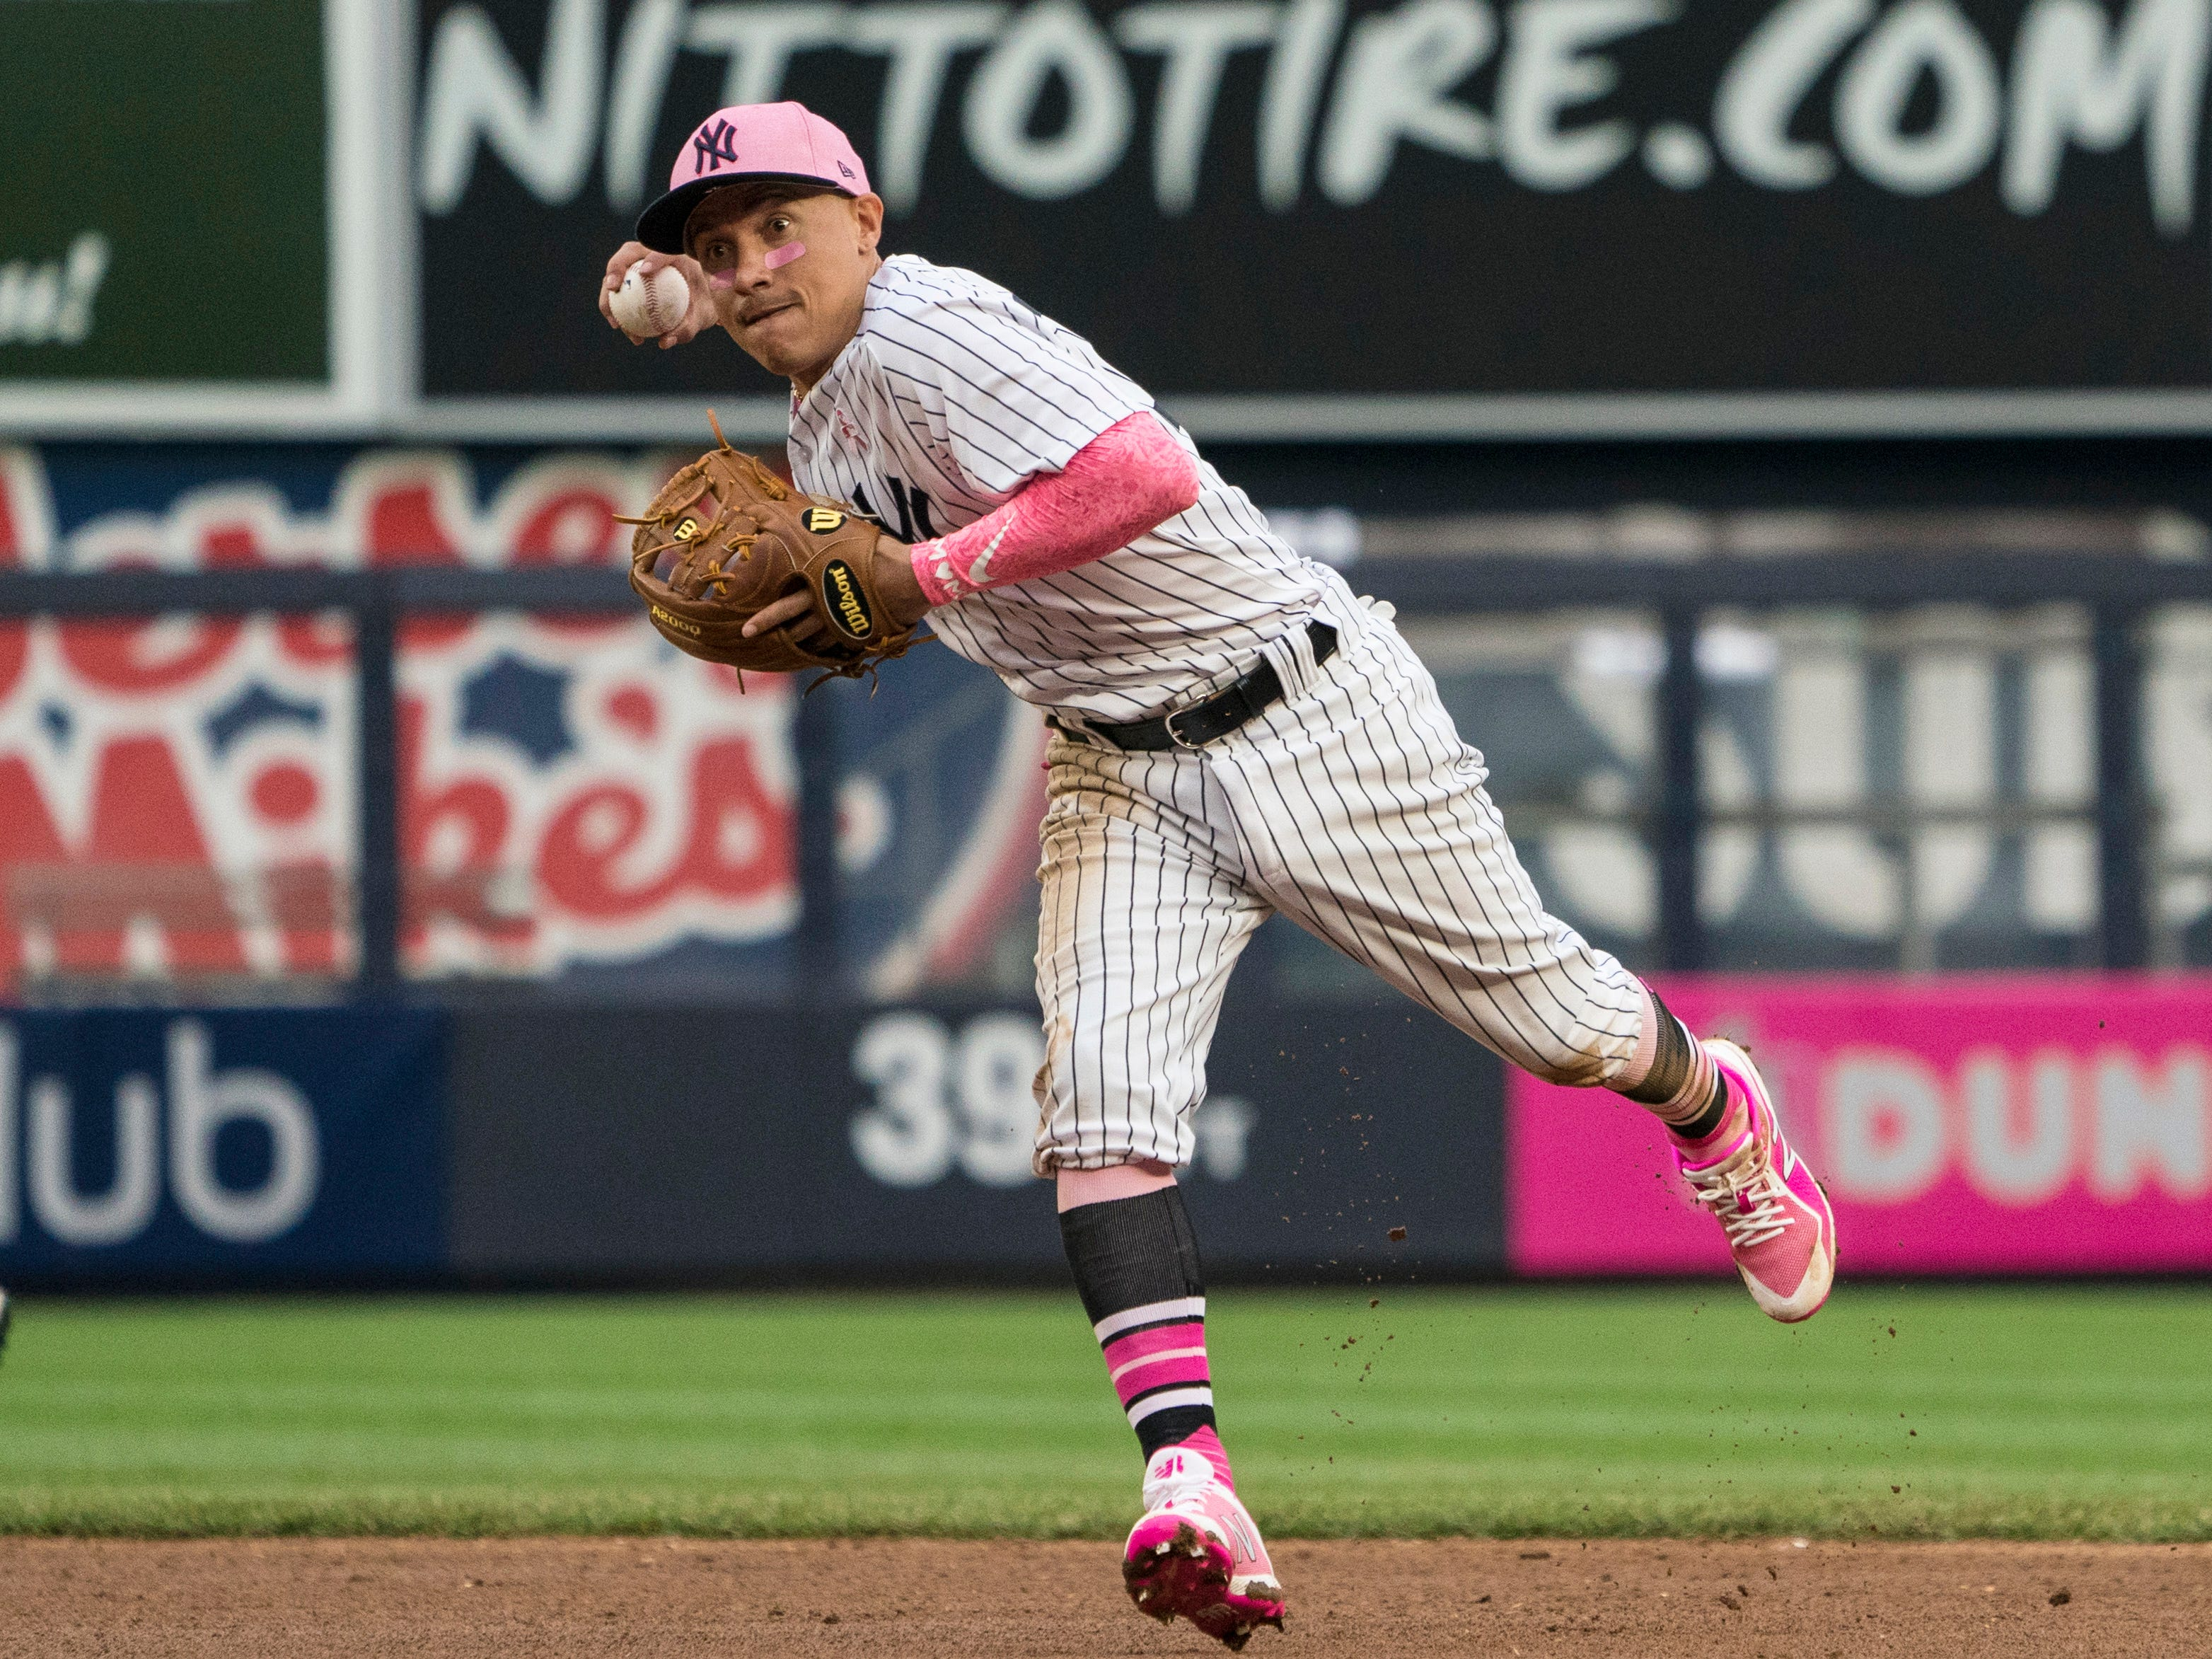 Nov. 28: The Yankees traded INF Ronald Torreyes to the Cubs for Player To Be Named Later.